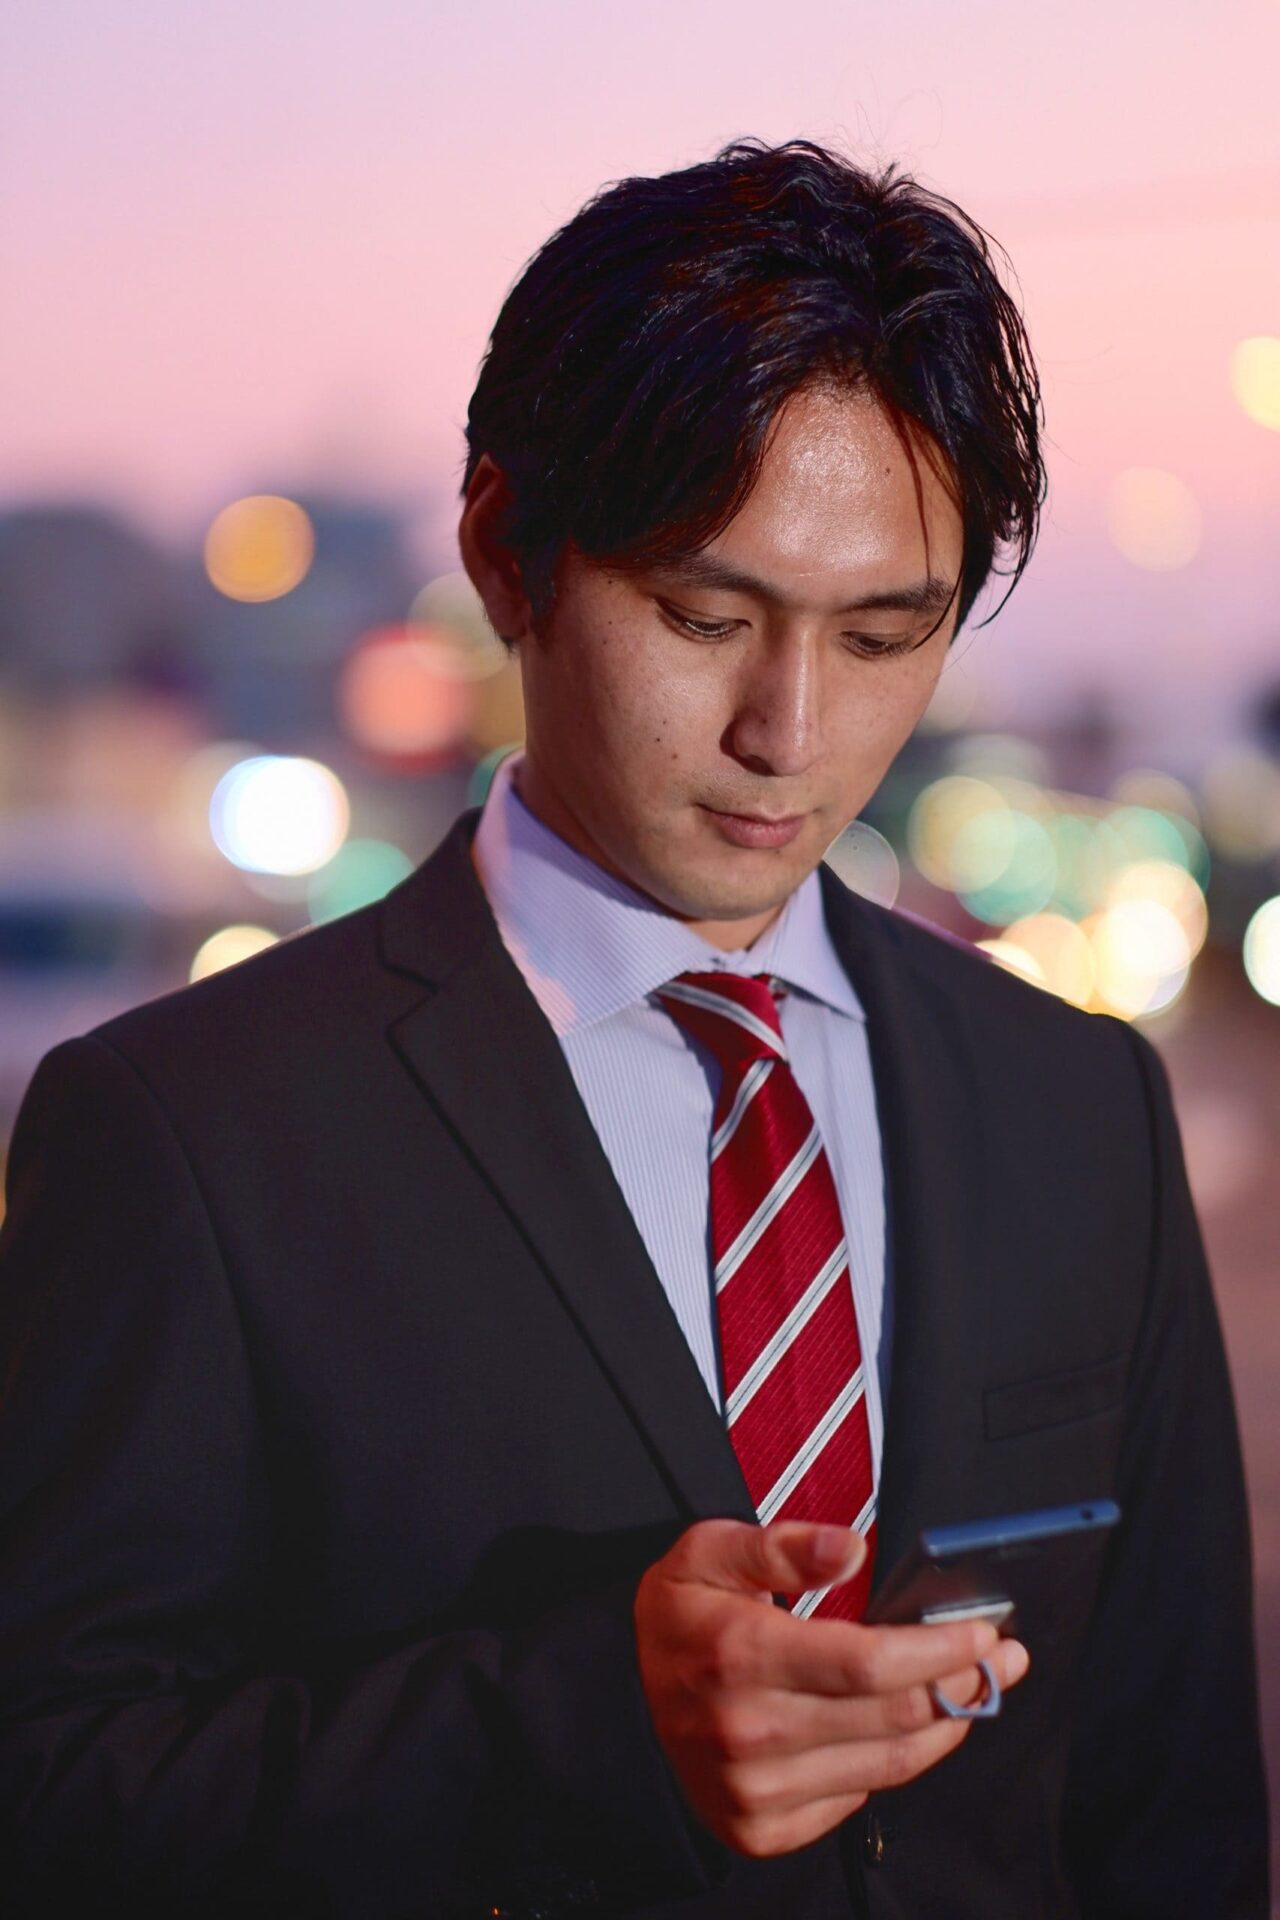 Read more about the article 彼氏が関係を終わらせたがっている時に出すサイン3つ